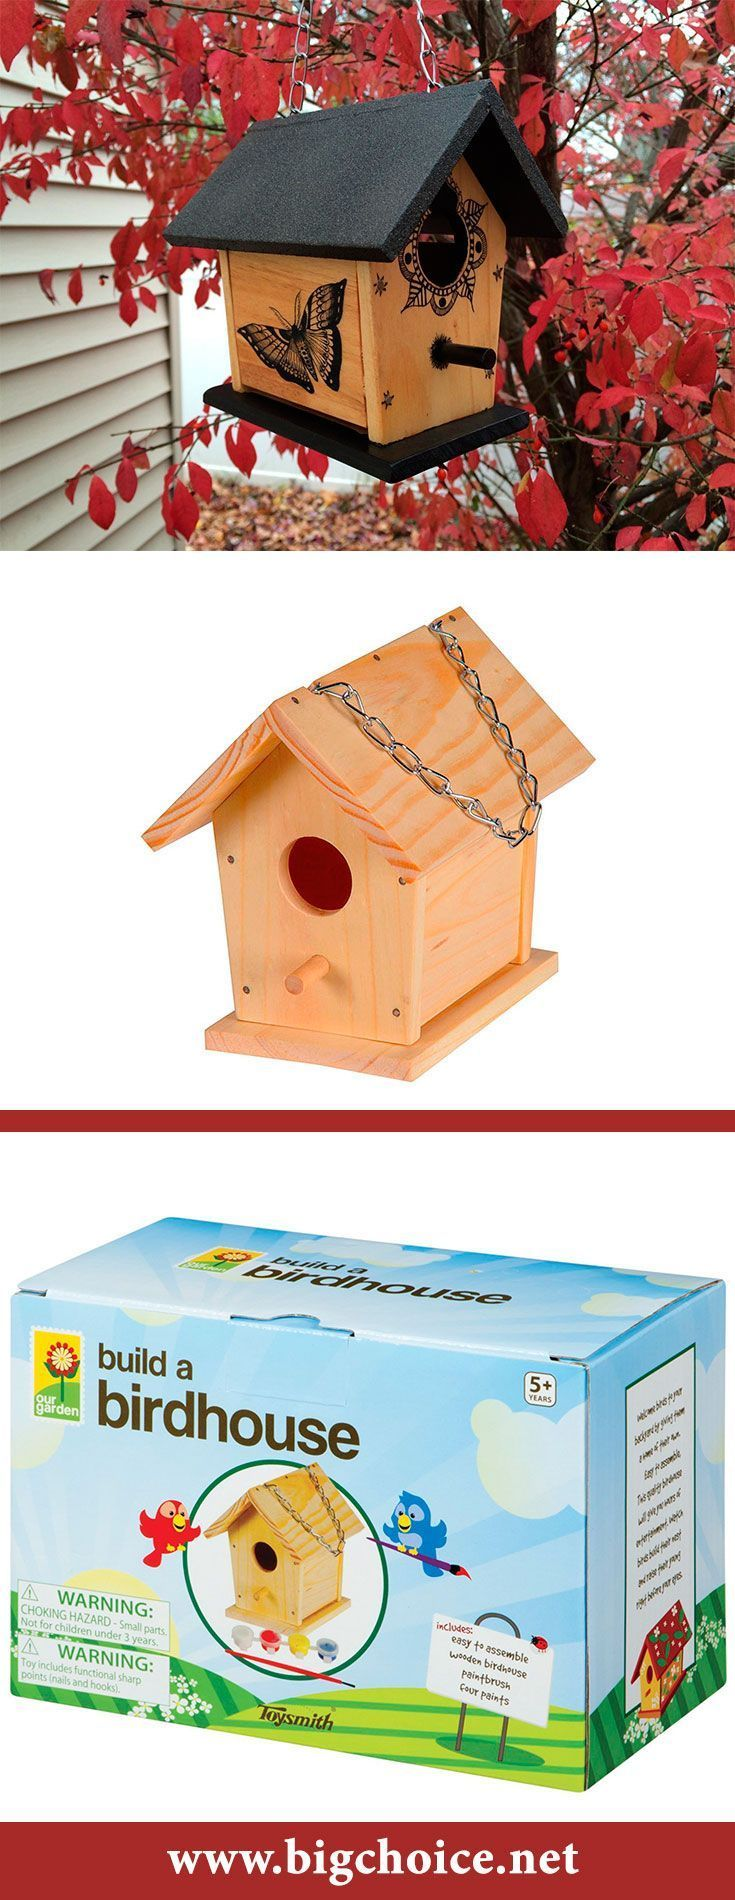 Don't you know how to make a simple birdhouse? Shop wooden bird house kit that contains all needed parts. #buildabirdhousekit